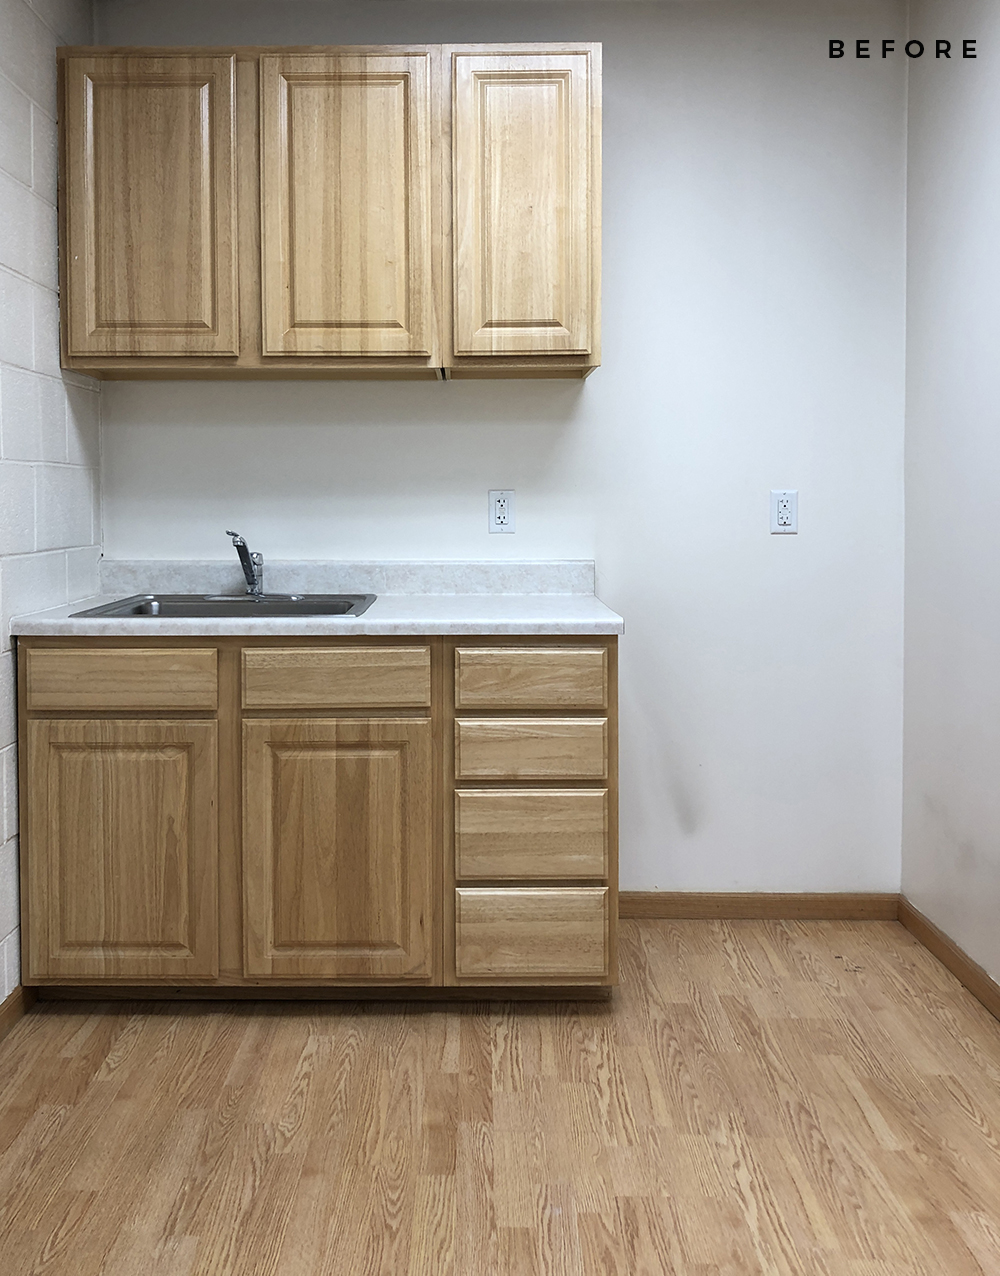 Office Kitchenette Makeover - roomfortuesday.com